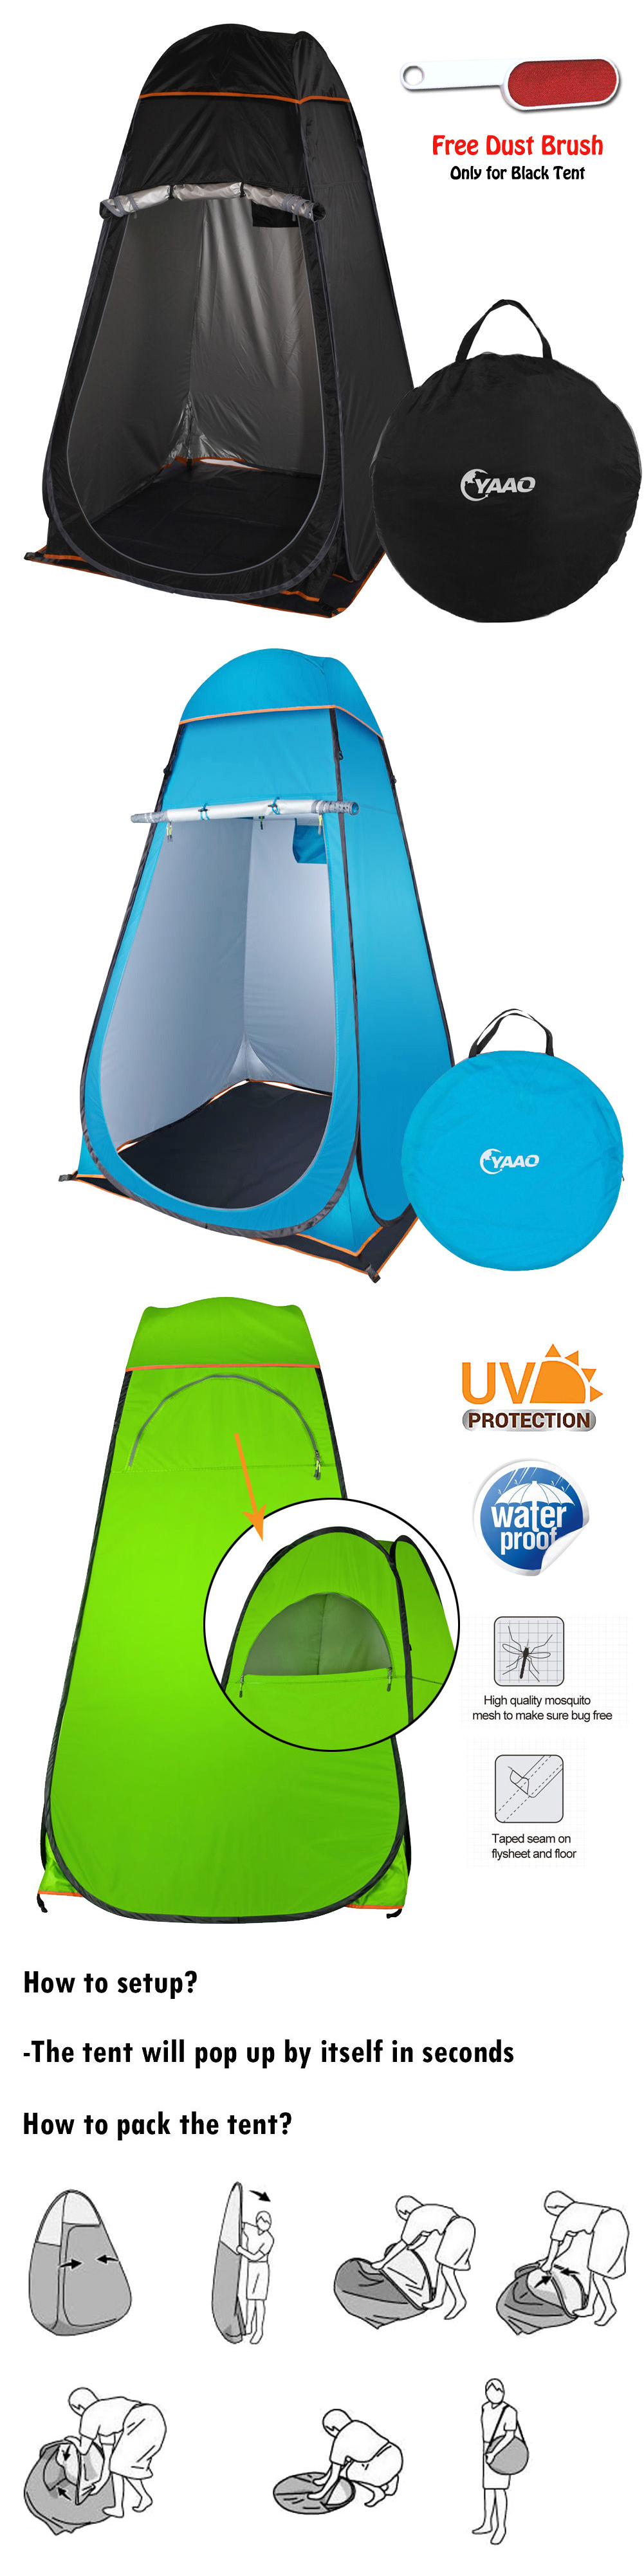 Tents 179010: Portable Pop Up Changing Room Privacy Toilet Shower ...